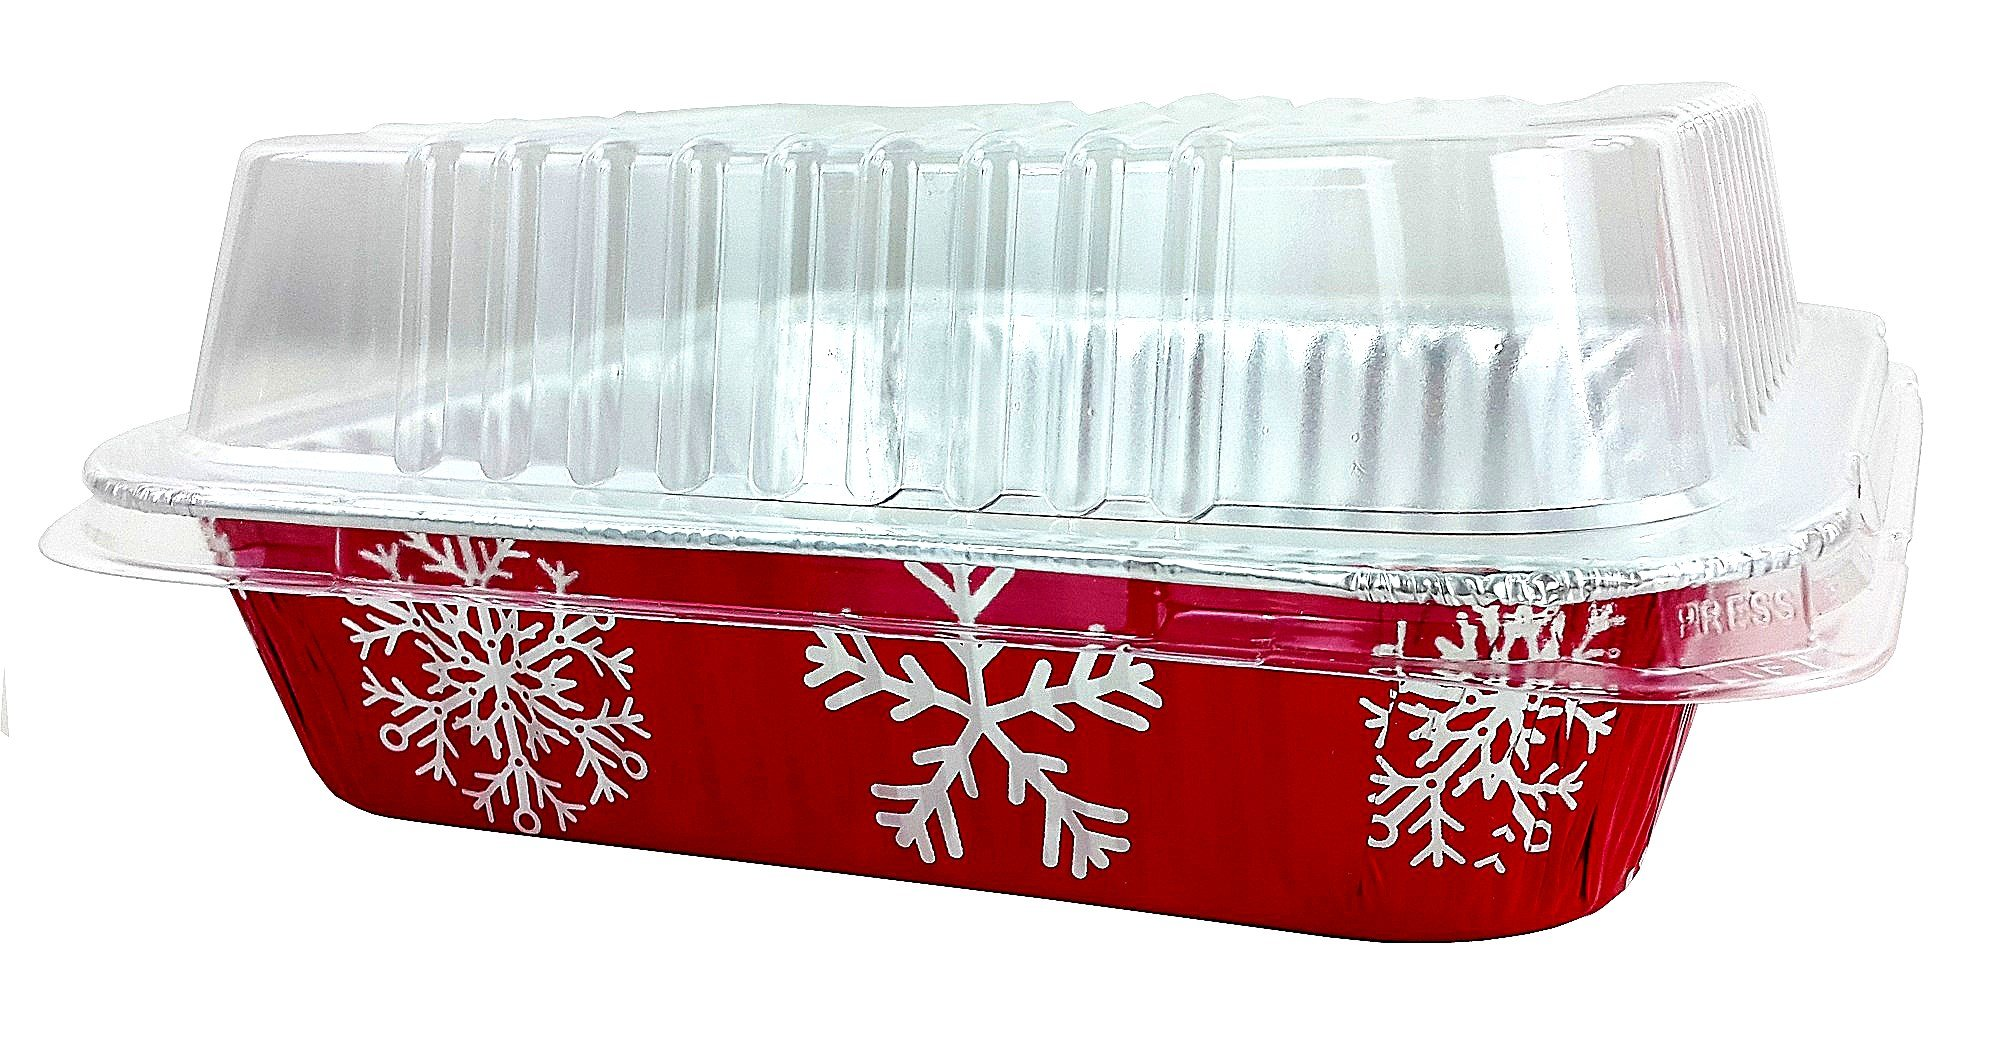 Pactogo Red Holiday Christmas Square Cake Aluminum Foil Pan w/Clear Dome Lid Disposable Baking Tins (Pack of 25 Sets) by PACTOGO (Image #7)